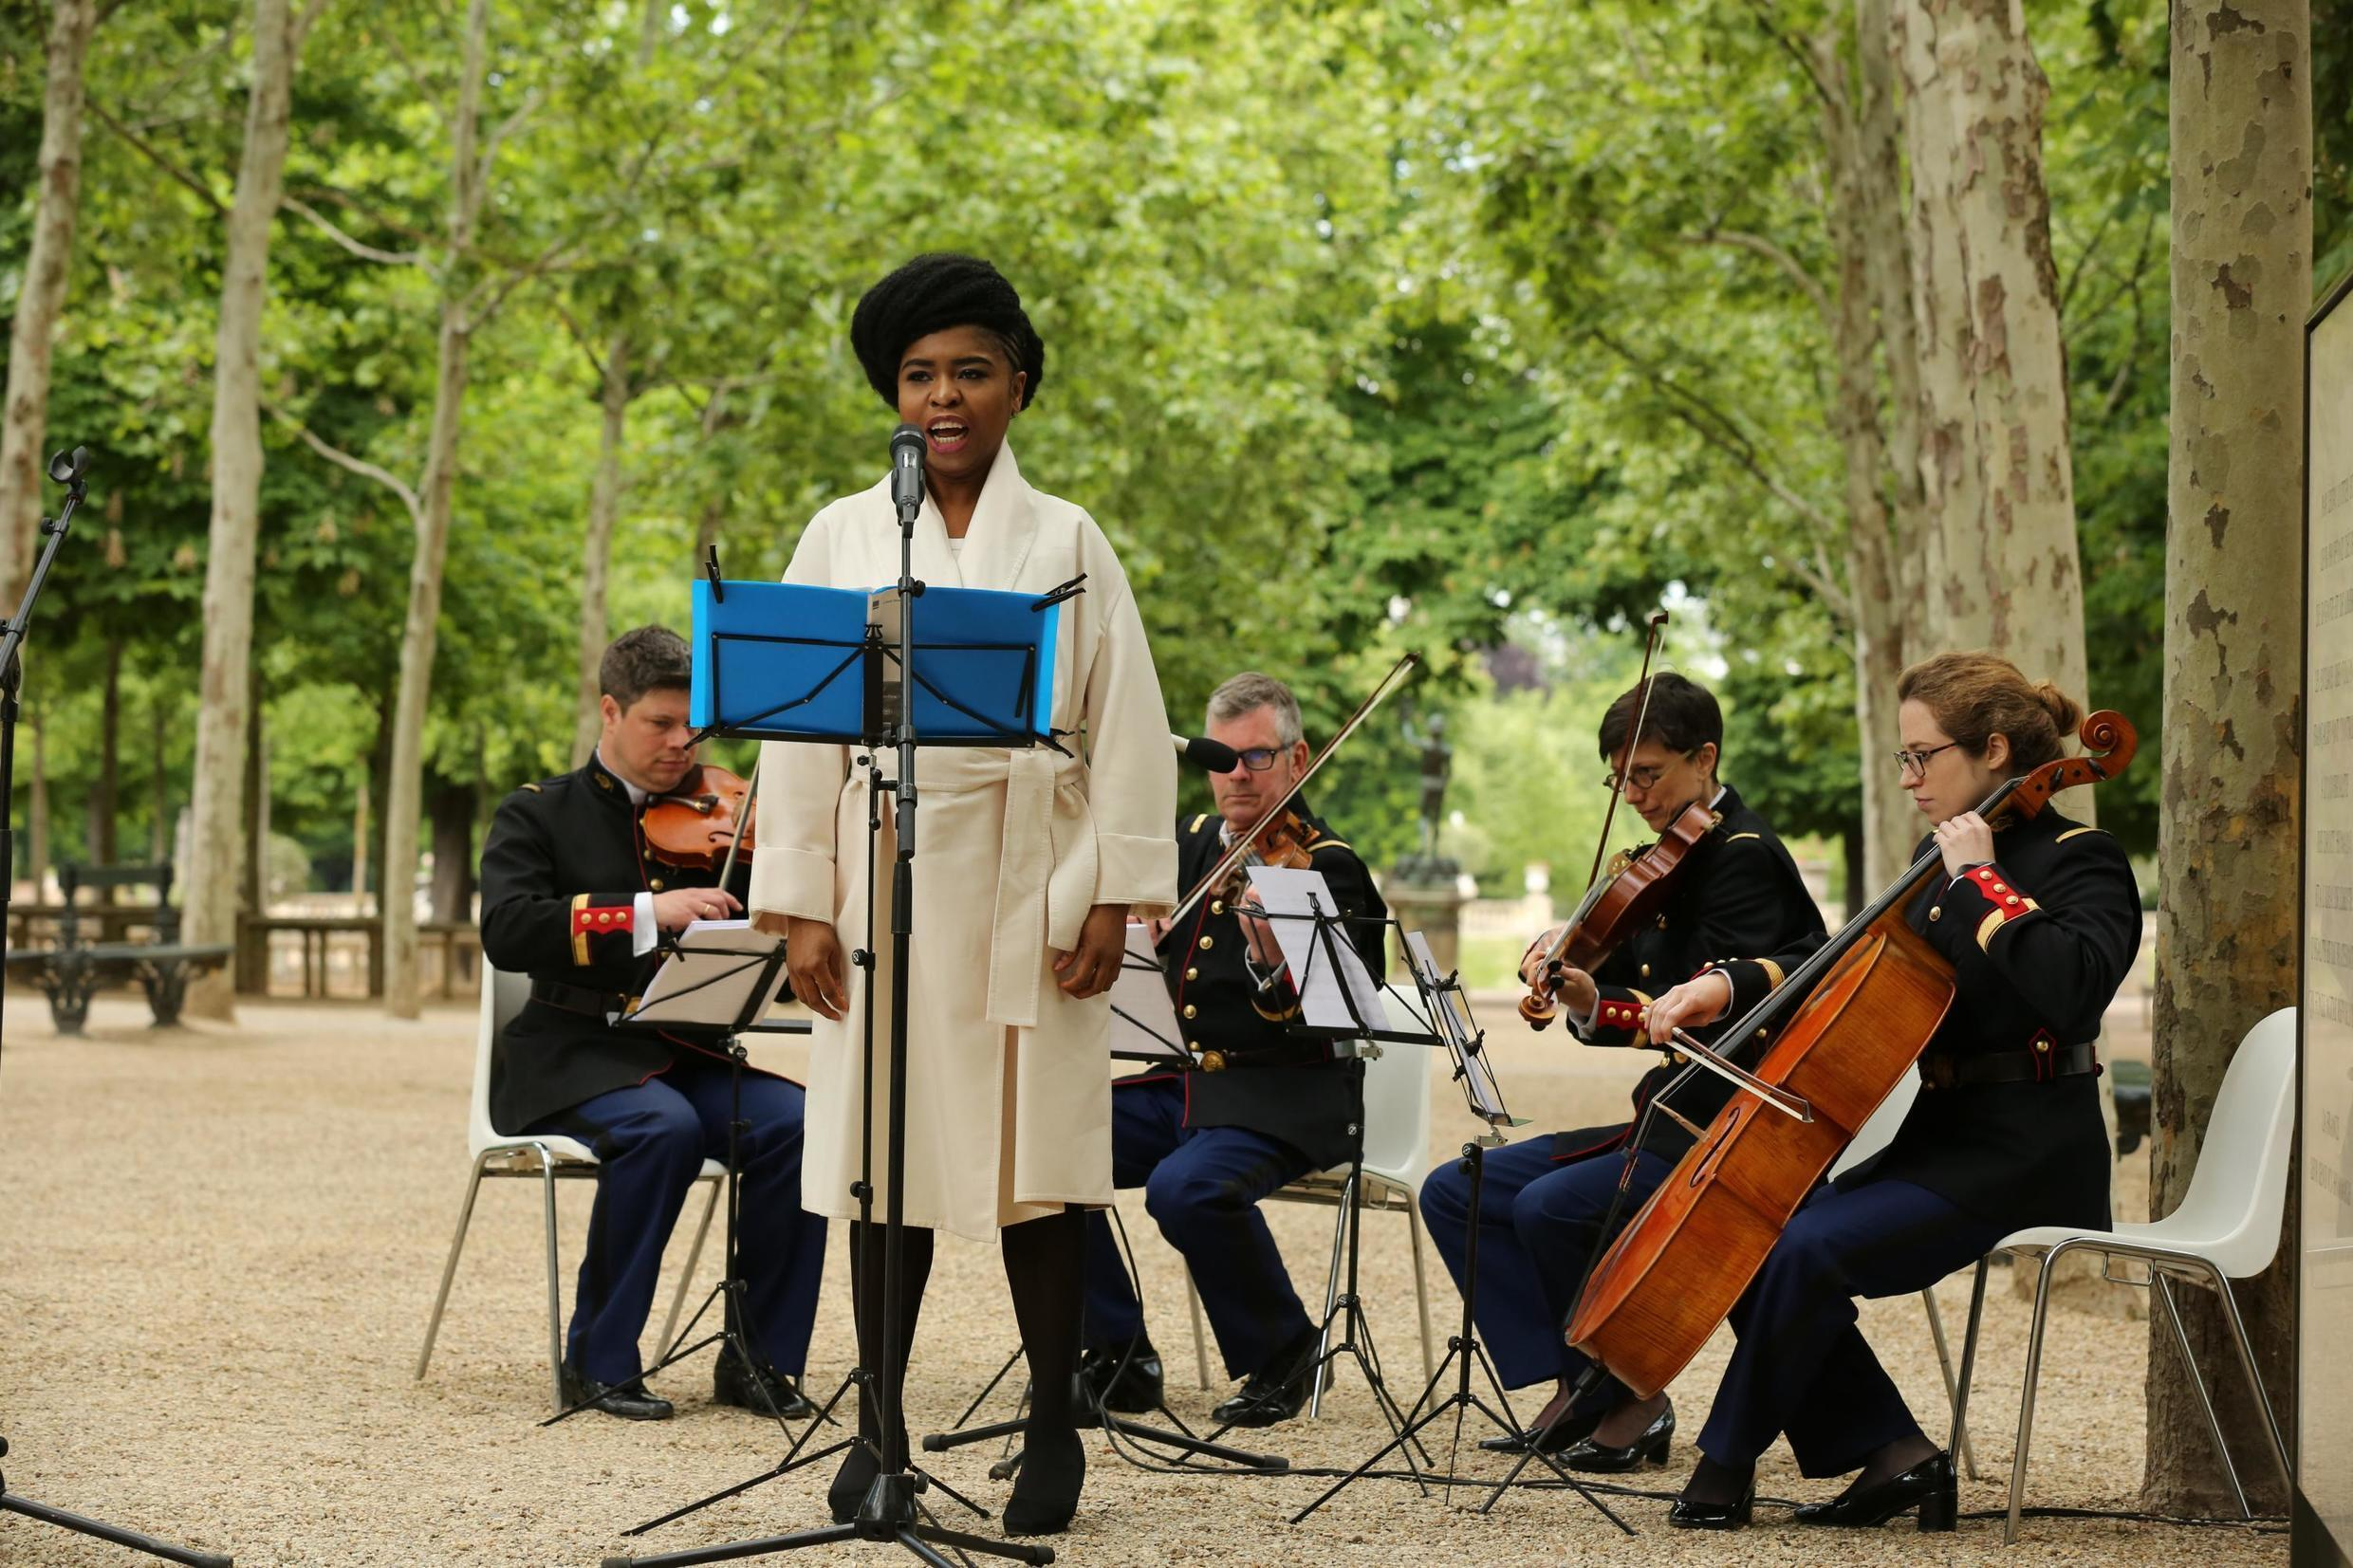 Omo Bello sings an alternative version of the French national anthem in the presence of president Emmanuel Macron on 10 May, 2019, to mark the abolition of slavery in France.